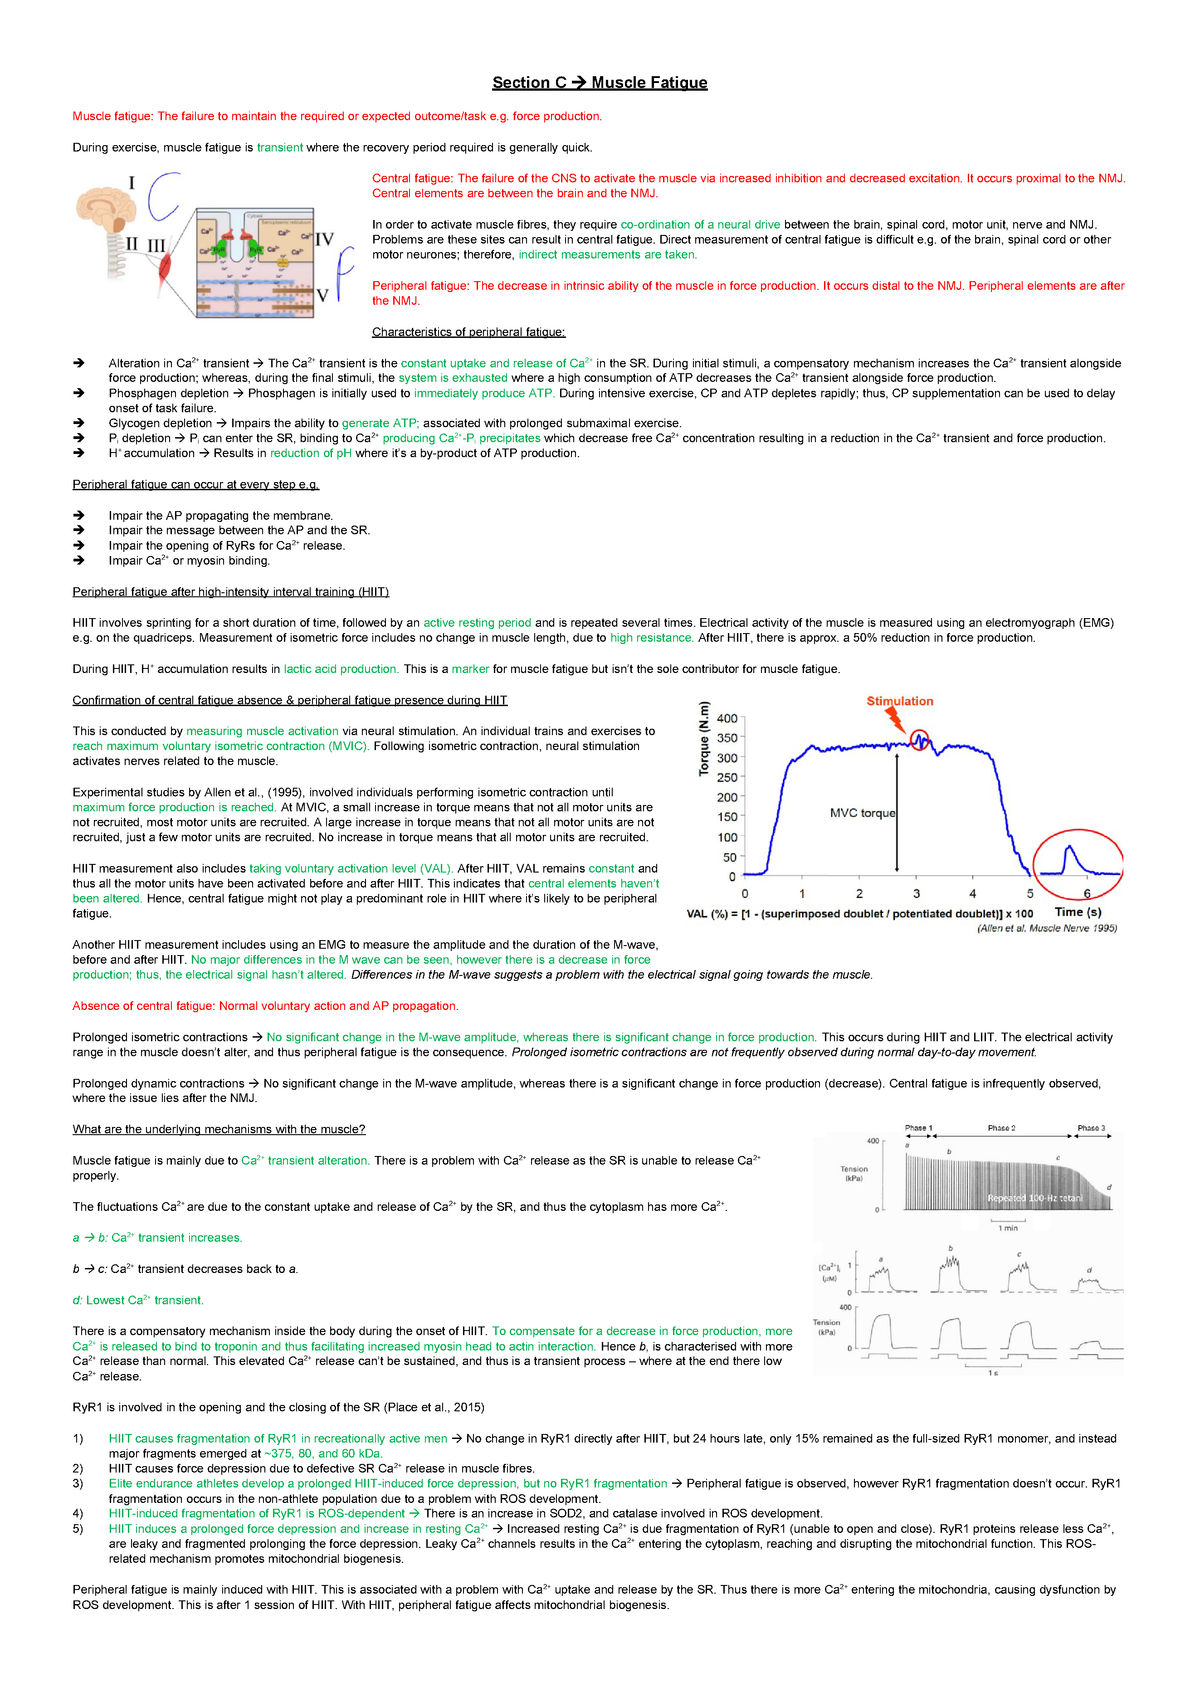 Muscle fatigue essay plan - MOD005669: Anatomy and